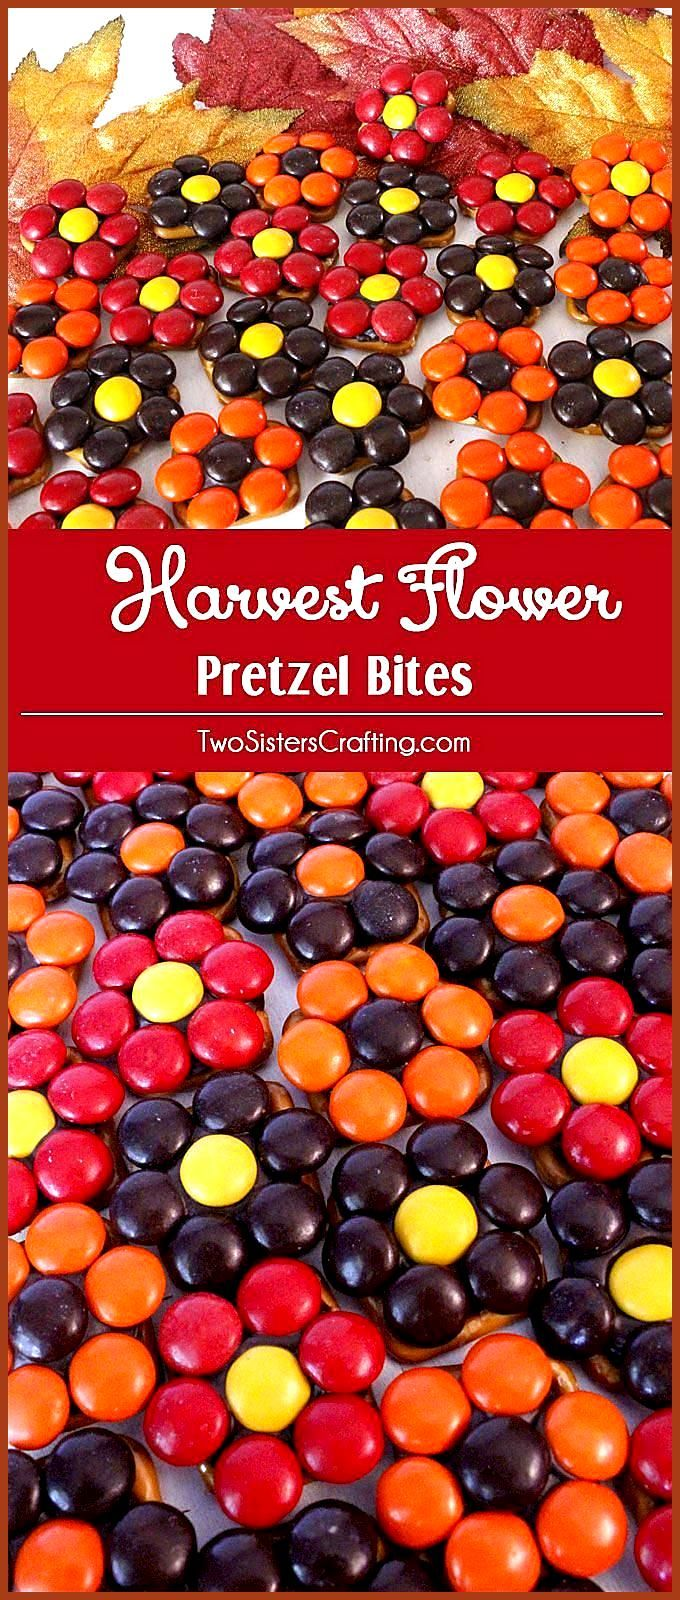 Harvest Flower Pretzel Bites Harvest Flower Pretzel Bites Informations About Harvest Flower Pretzel Bites Pin You can easily use my profile to examine different pin types...